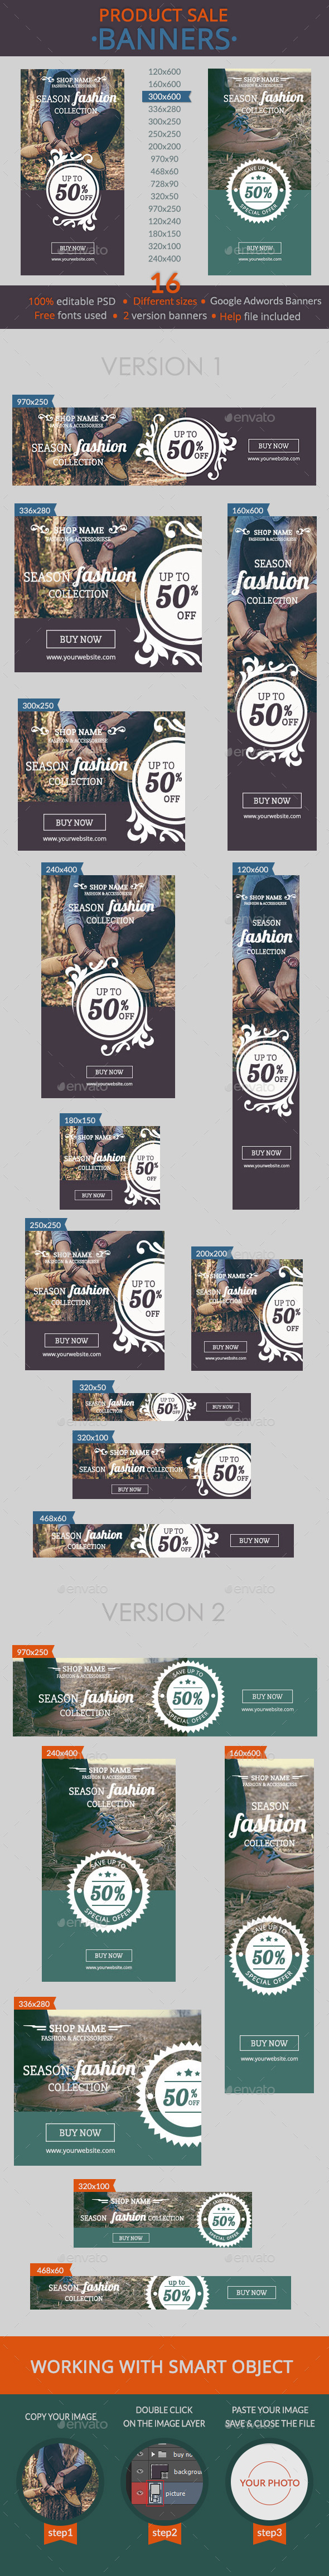 GraphicRiver Product Sale Banners 10908988